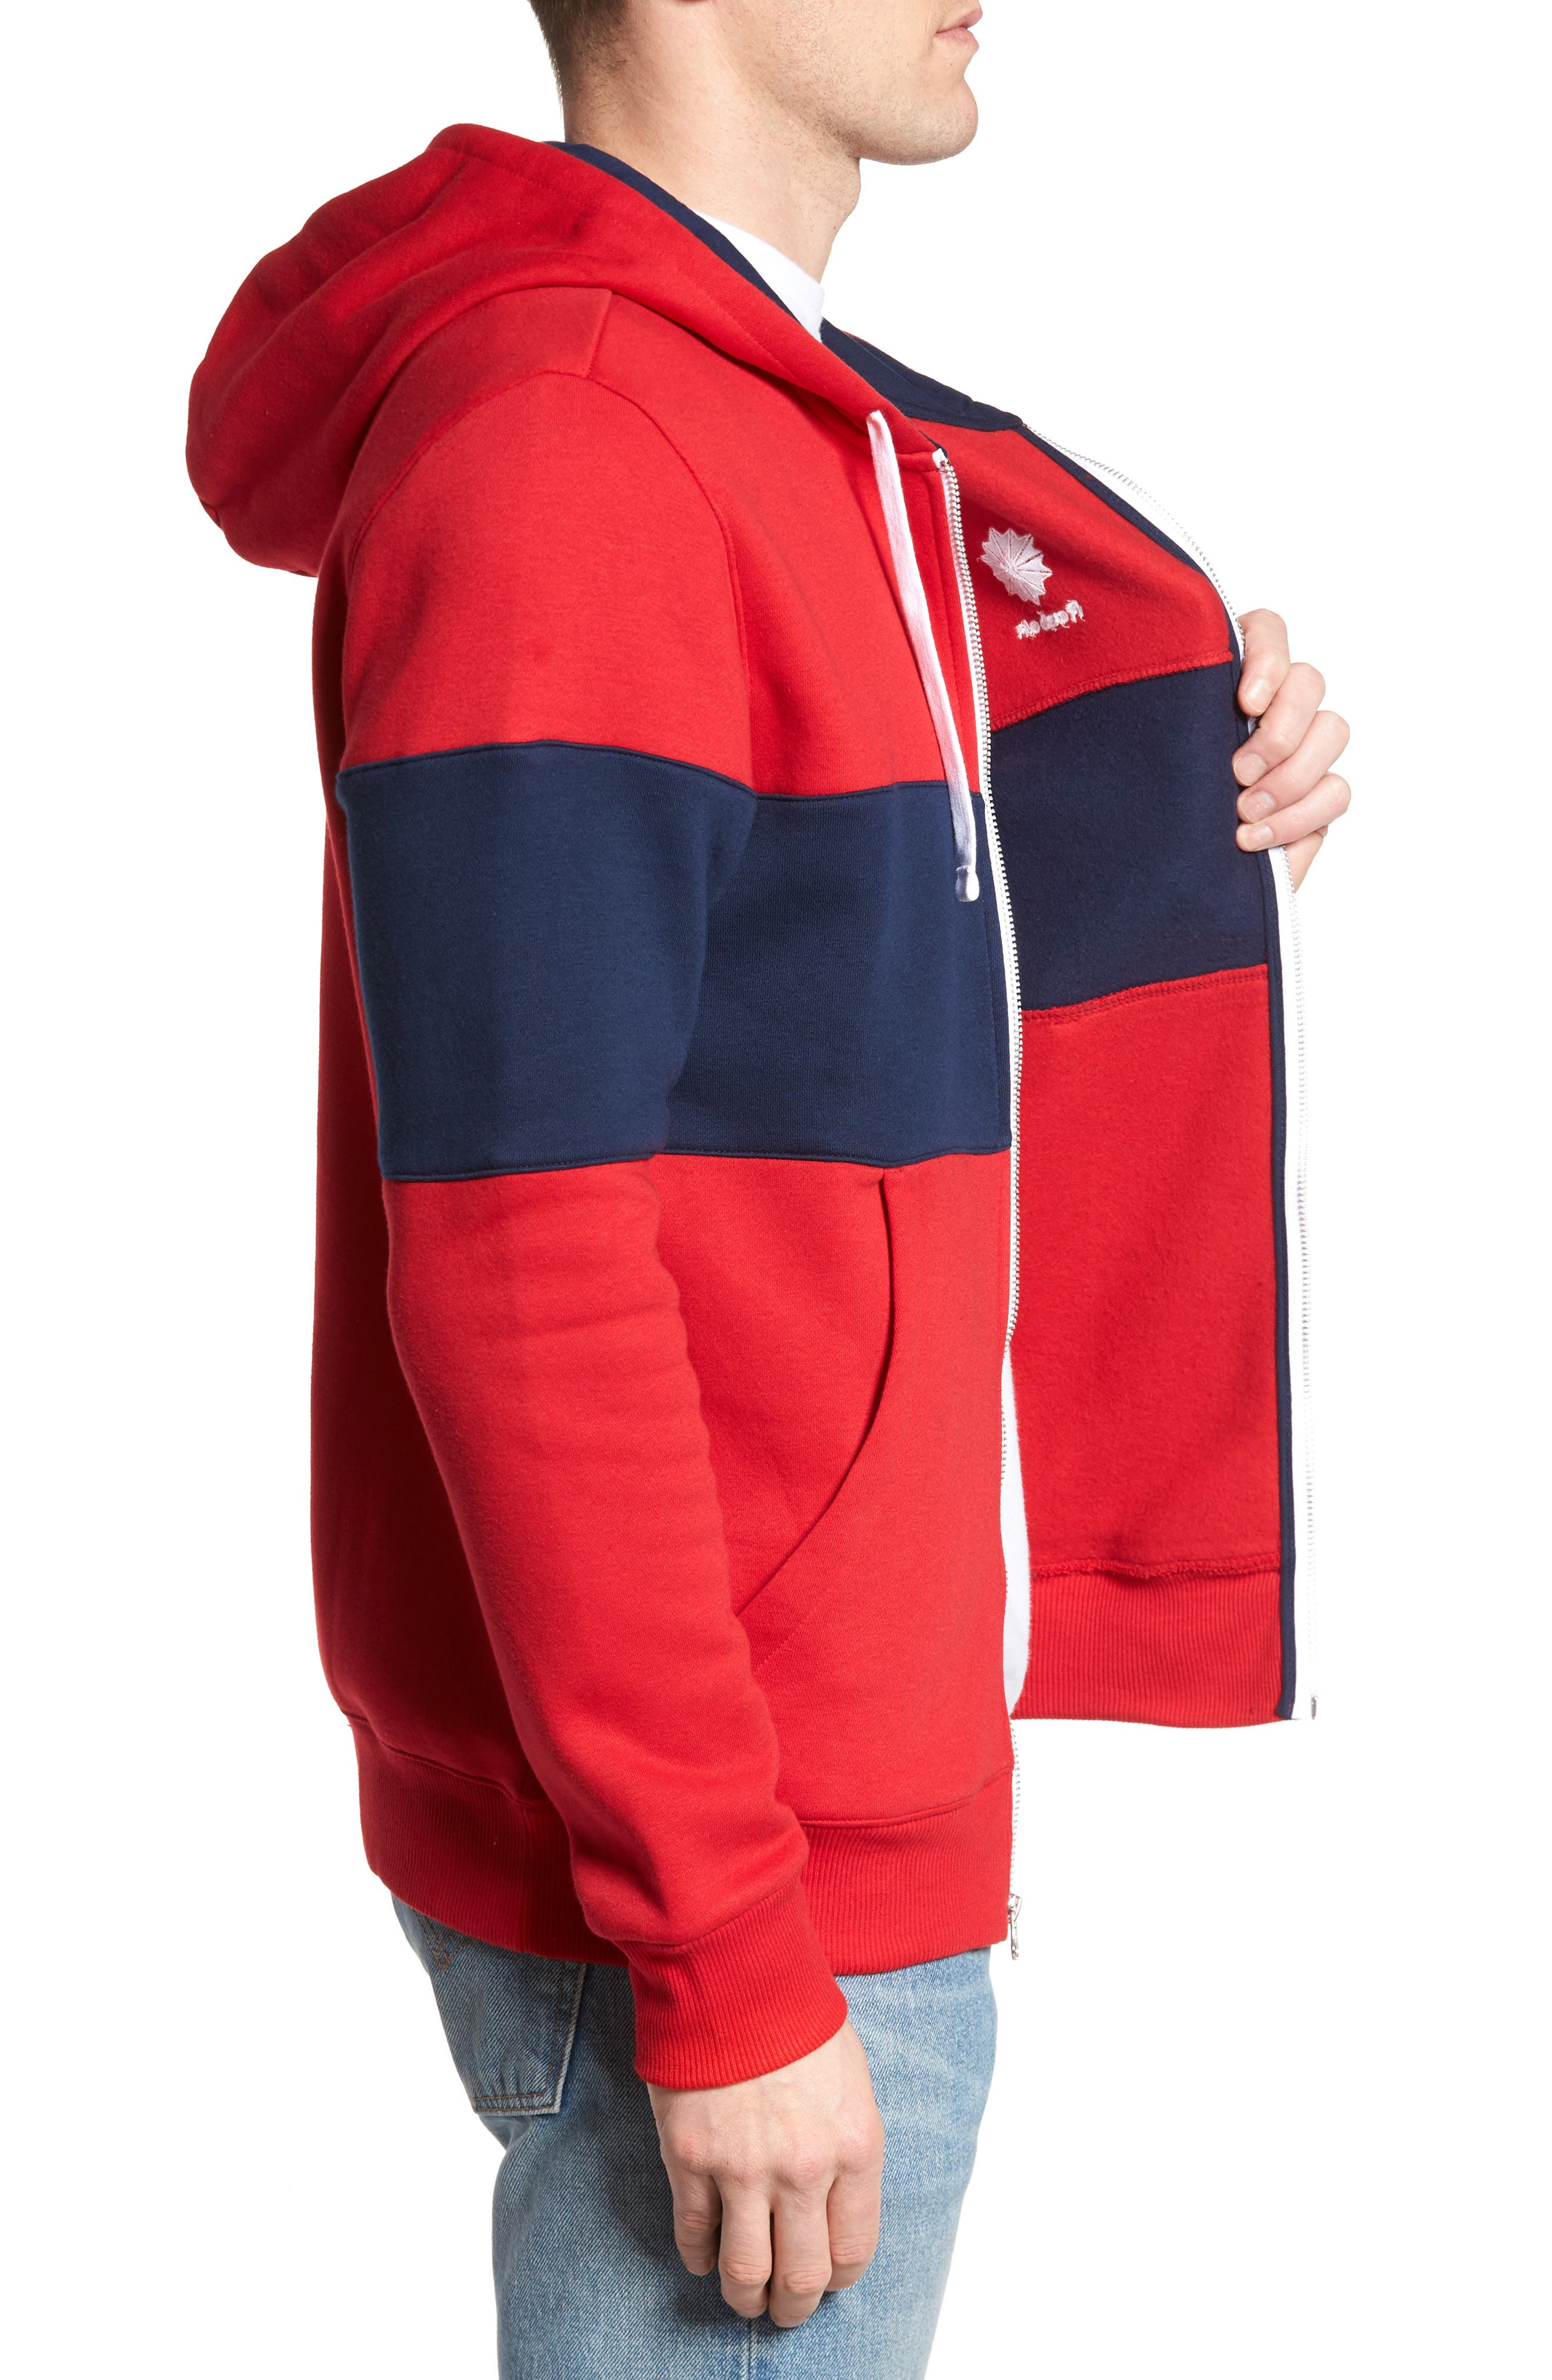 Classics Foundation Clockblock Zip Hoodie,                             Alternate thumbnail 3, color,                             Excellent Red/ Collegiate Navy